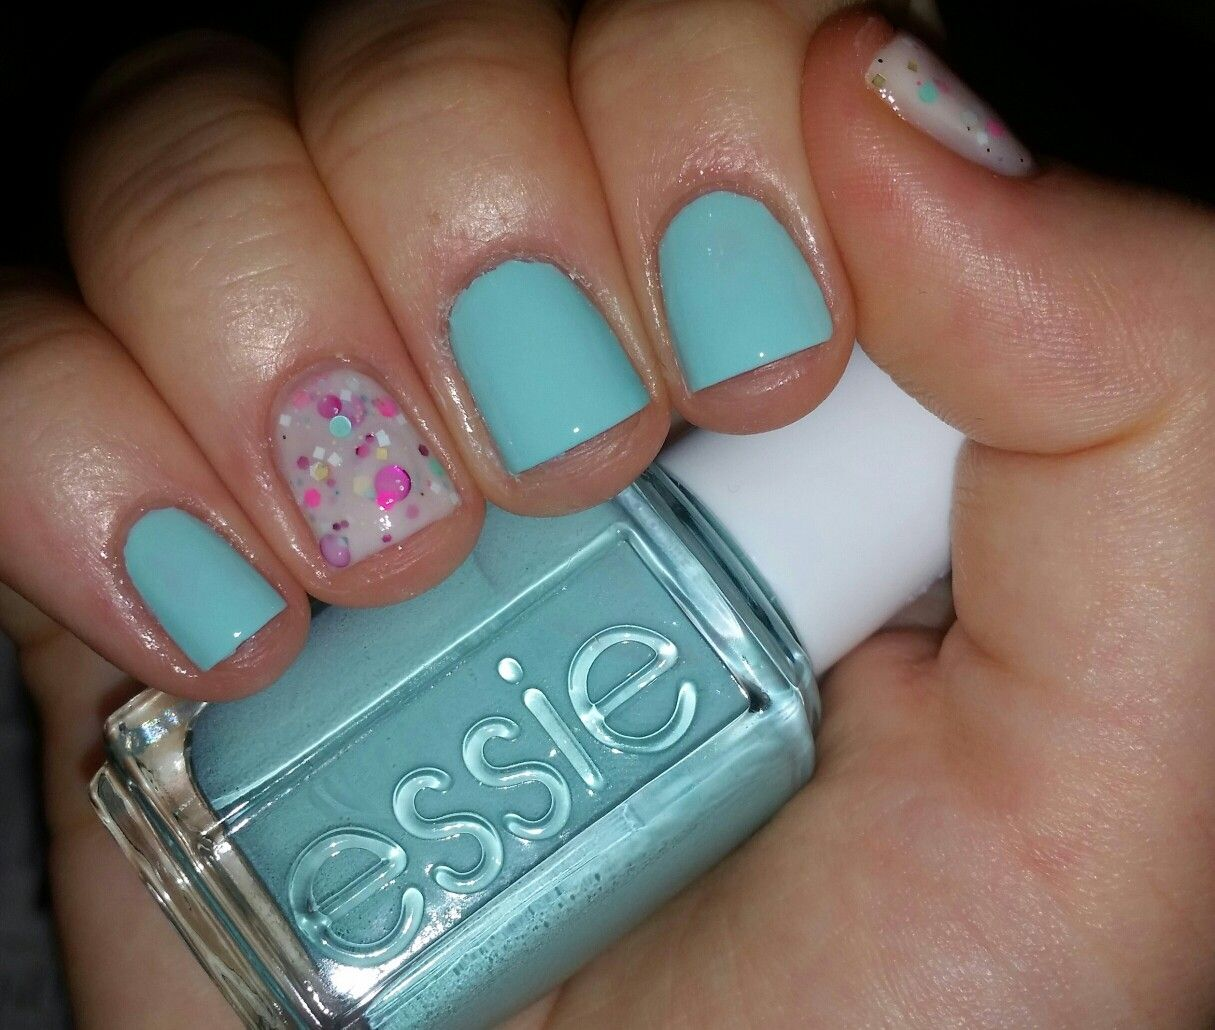 Essie: \'Blossom Dandy\' + Candied Apple Polish: \'Tea \'n Crumpets ...